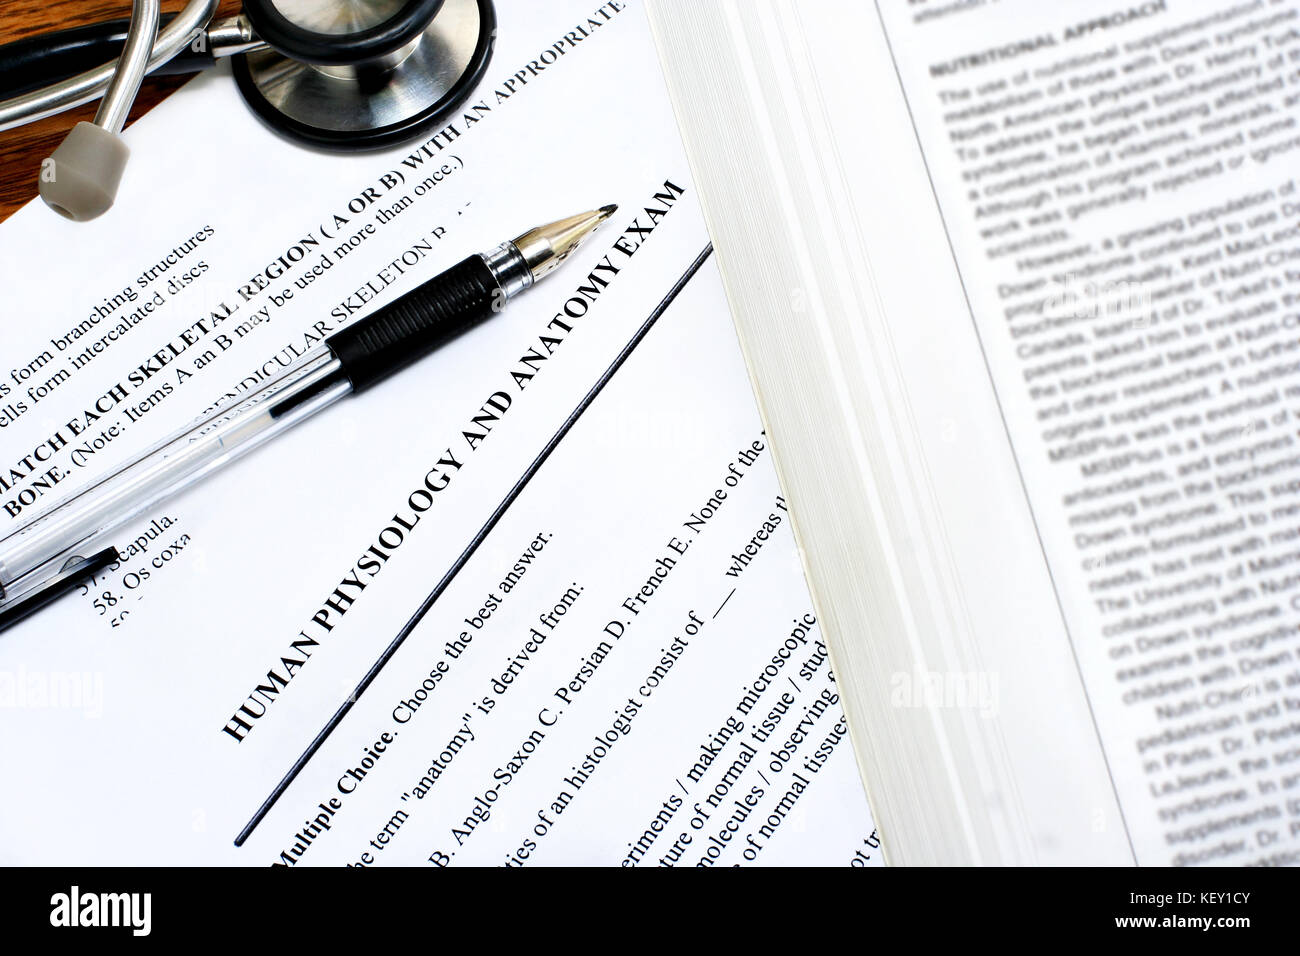 Medical exam papers on a desk with a pen, part of a stethoscope and ...